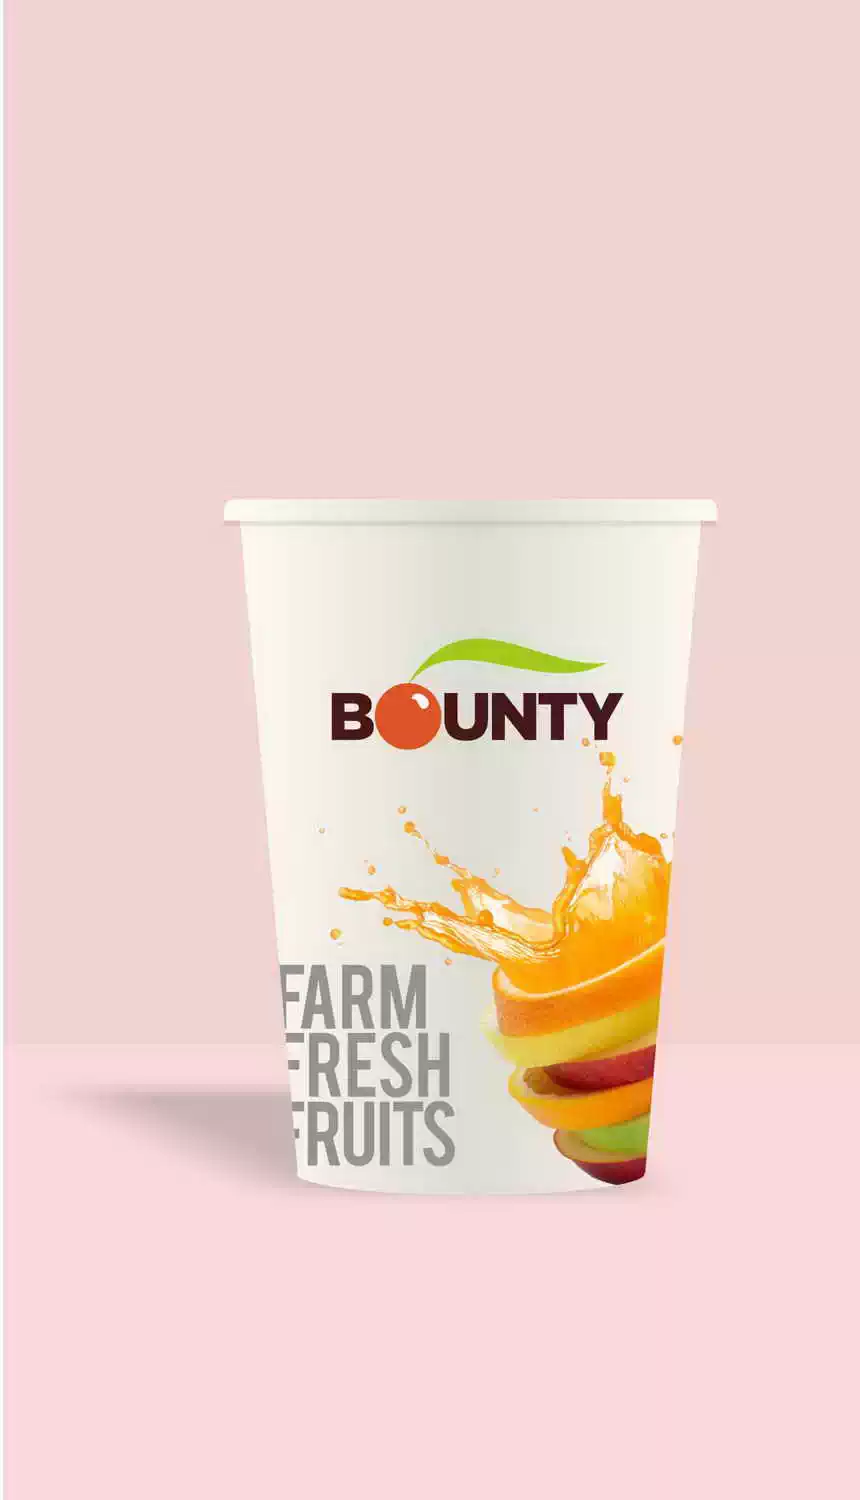 BOUNTY PAPER GLASS 1_resize.webp